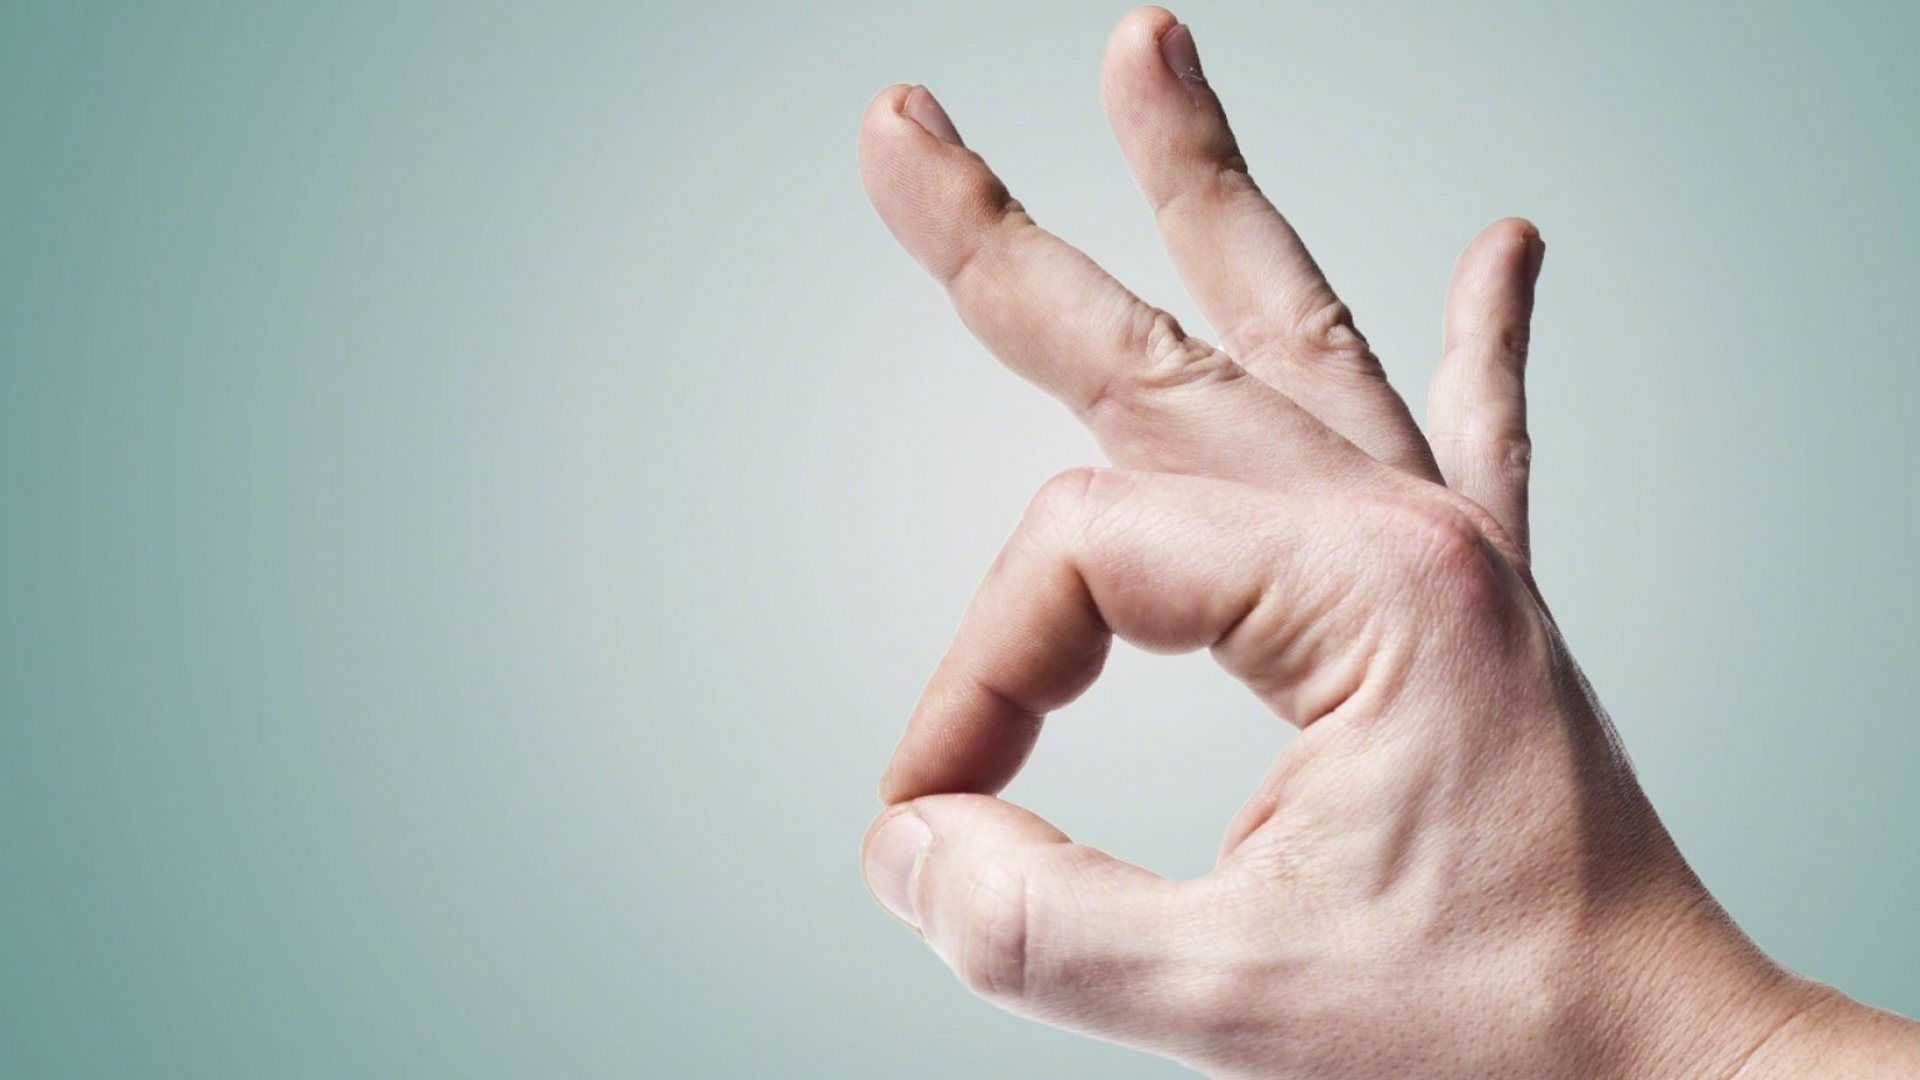 3 Things to Do With Your Hands When You Speak